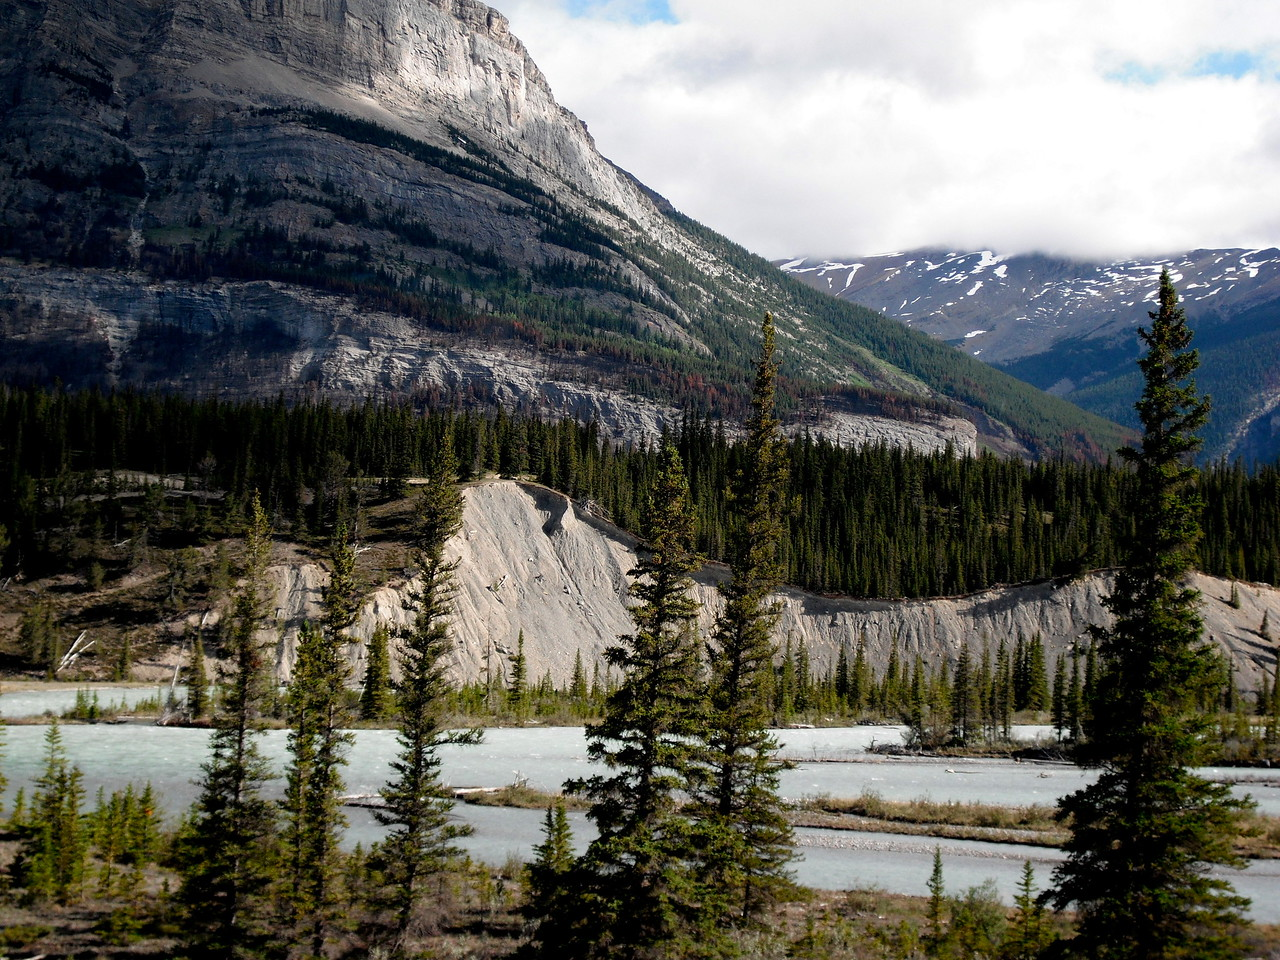 Along HWY 93 (Icefields Parkway)